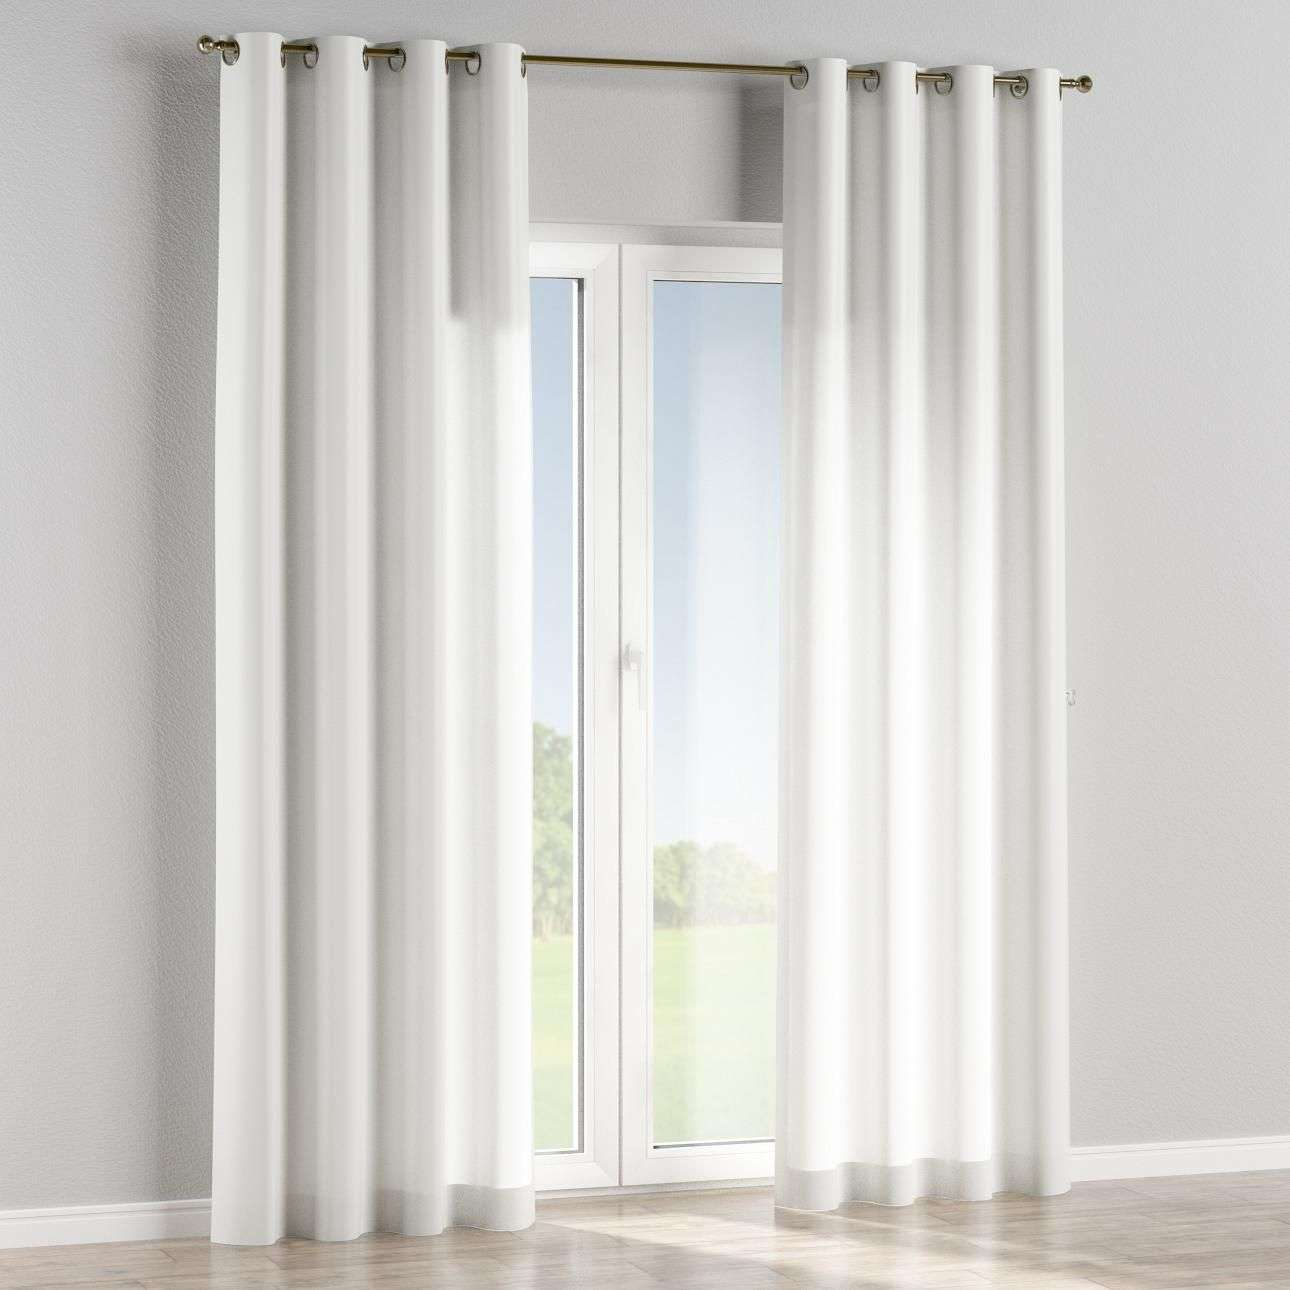 Eyelet lined curtains in collection Venice, fabric: 140-52